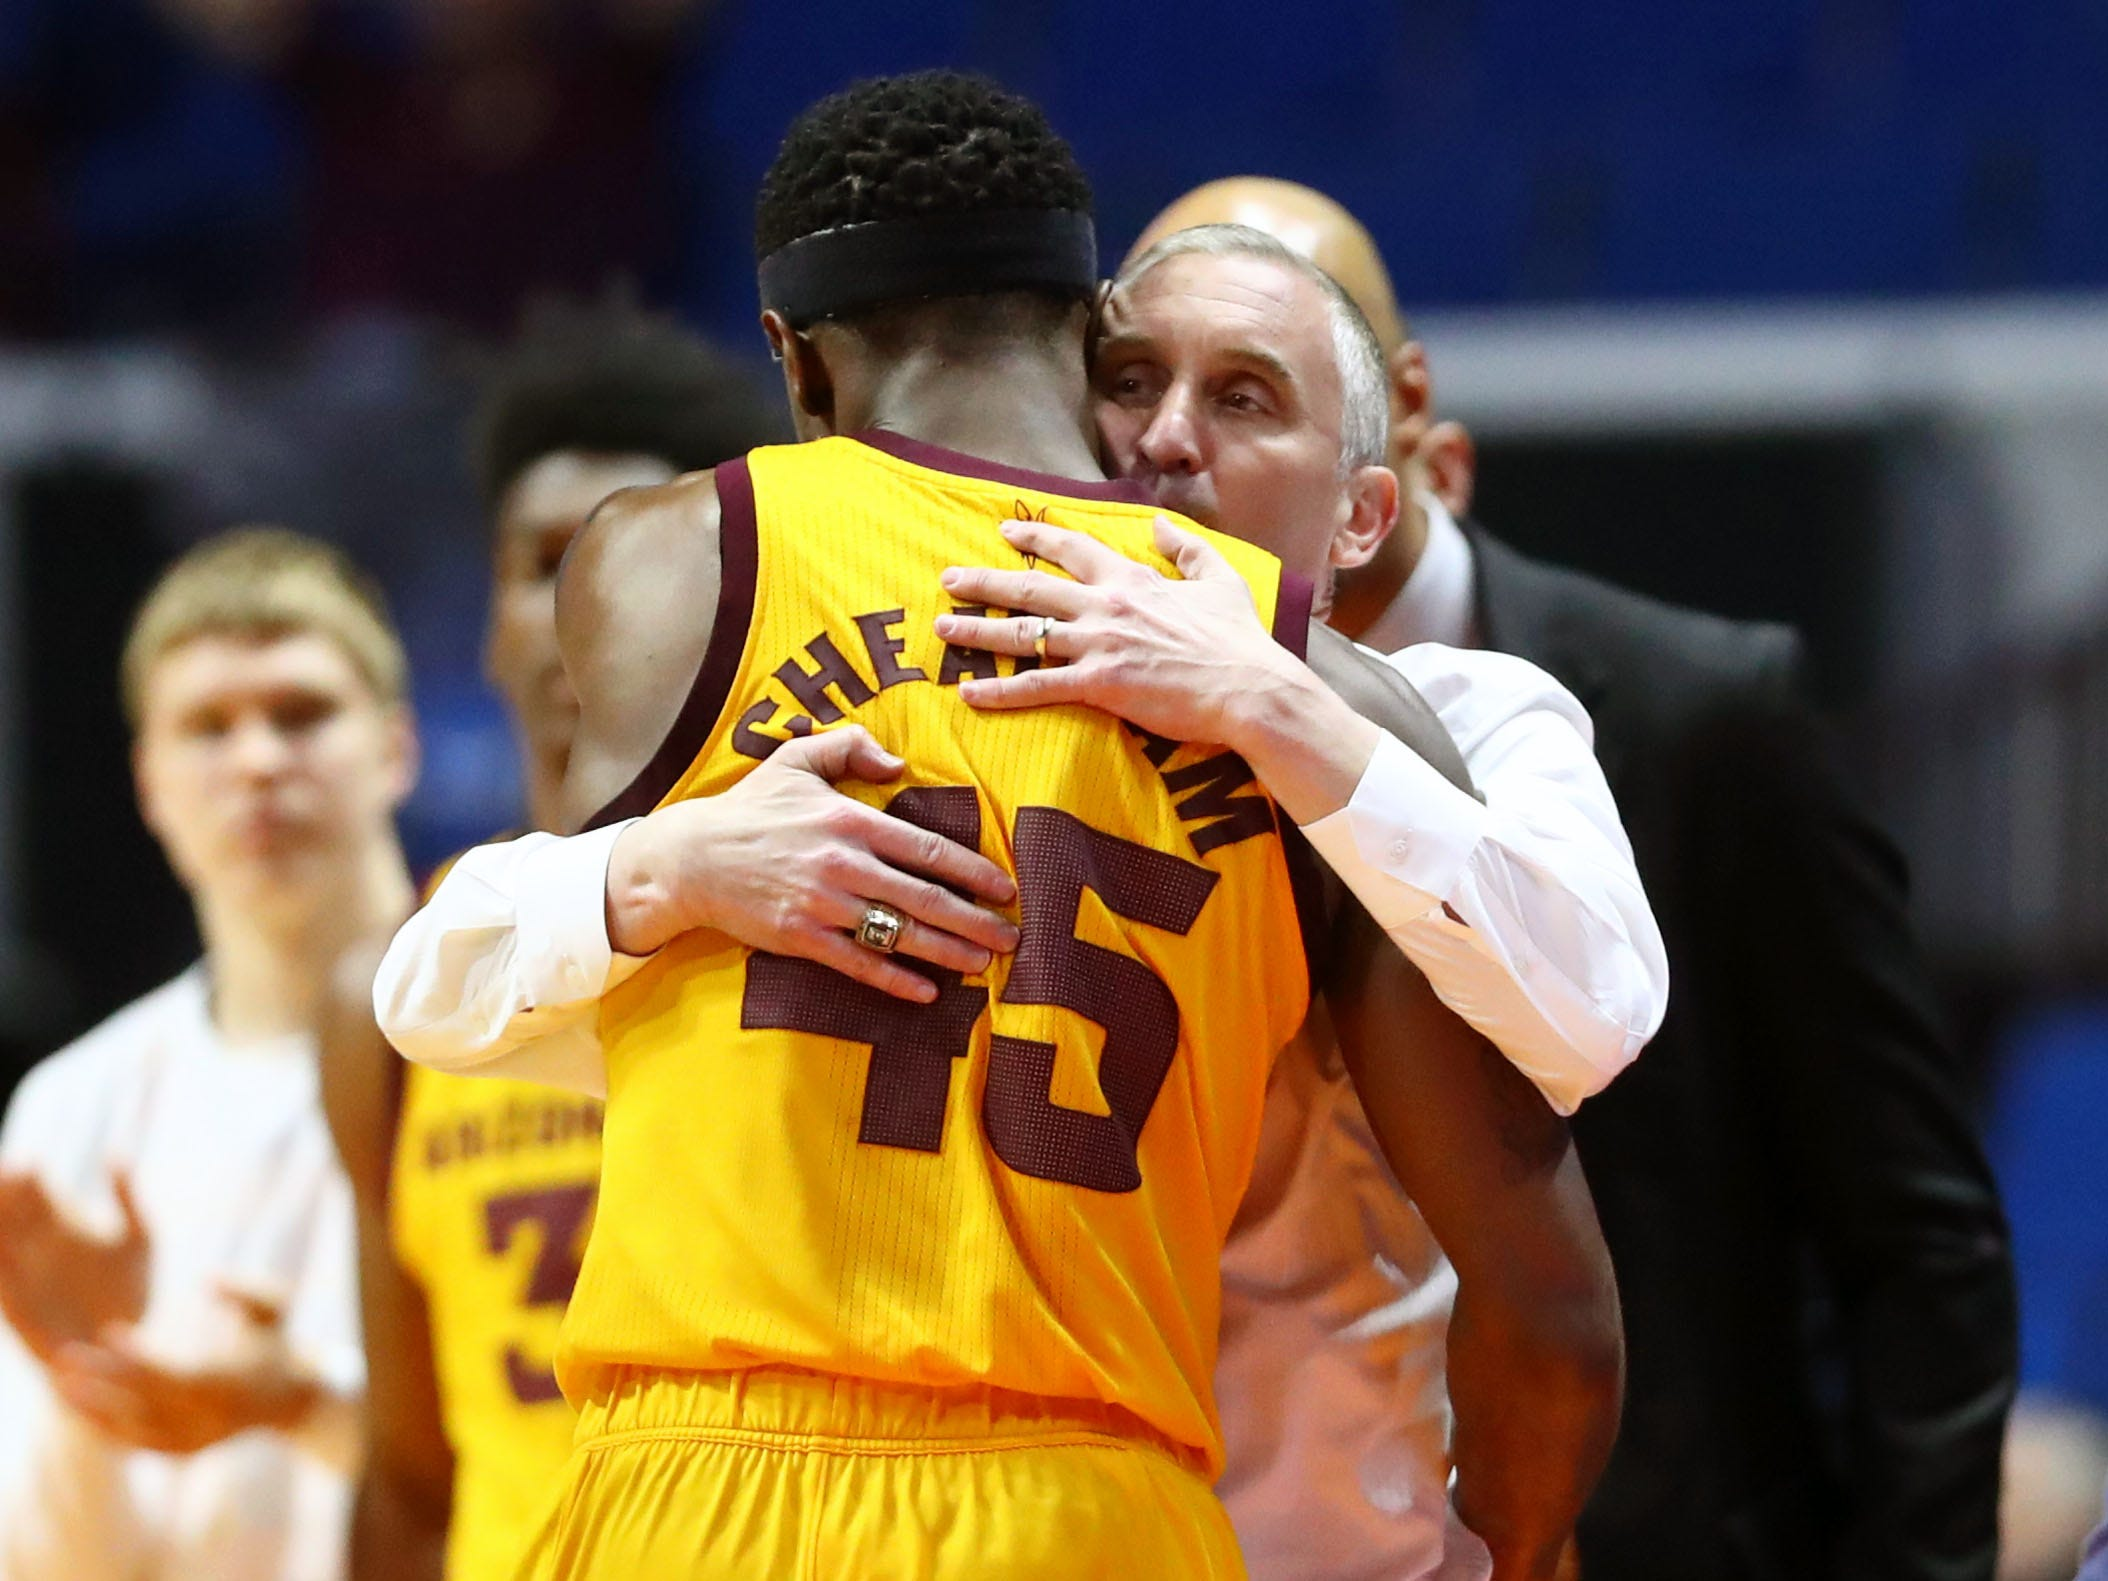 First round: No. 11 Arizona State loses to No. 6 Buffalo, 91-74.